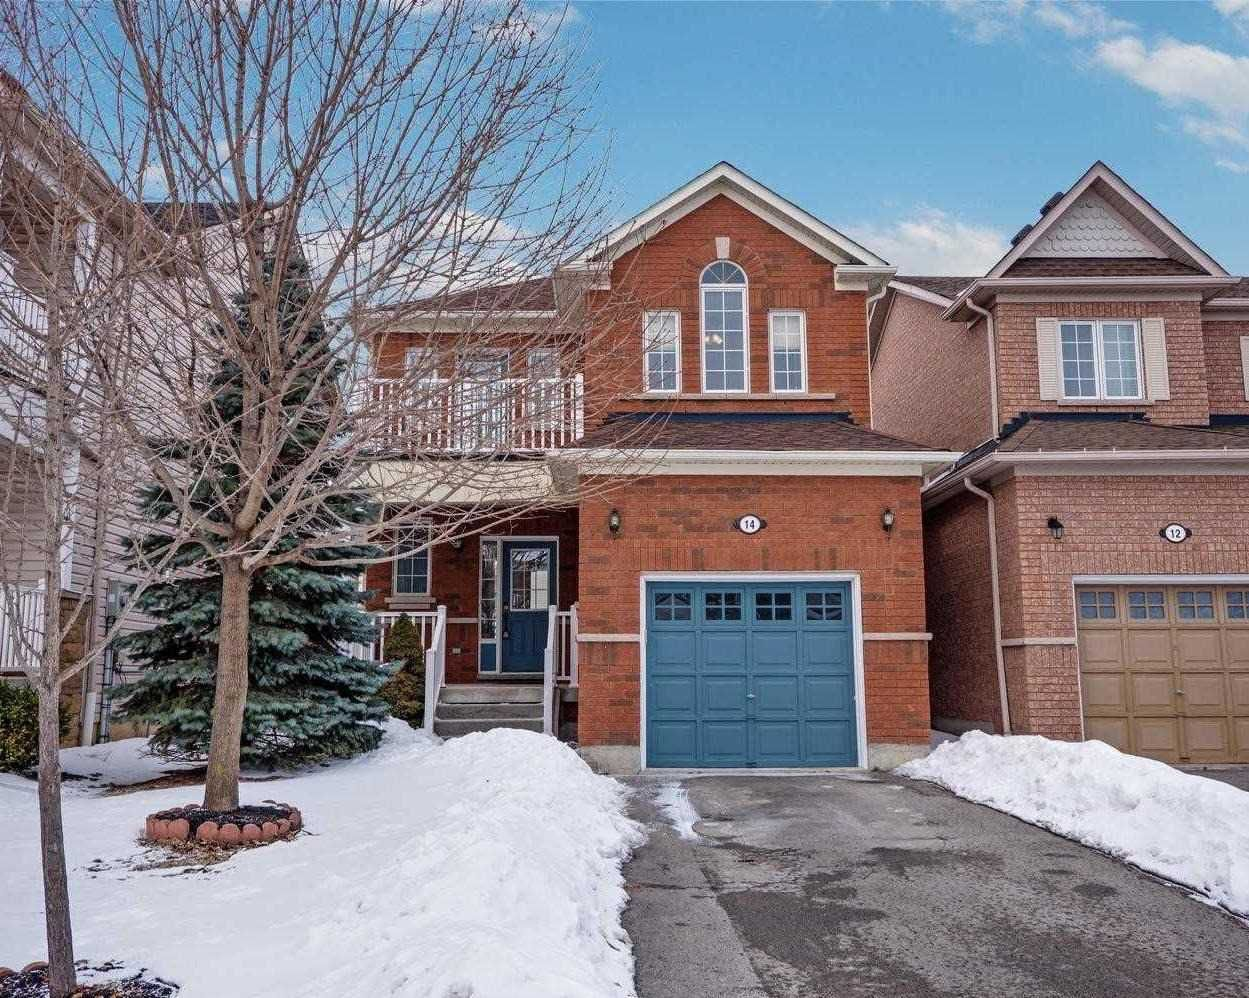 Main Photo: 14 Northgrove Crescent in Whitby: Brooklin House (2-Storey) for sale : MLS®# E4376552